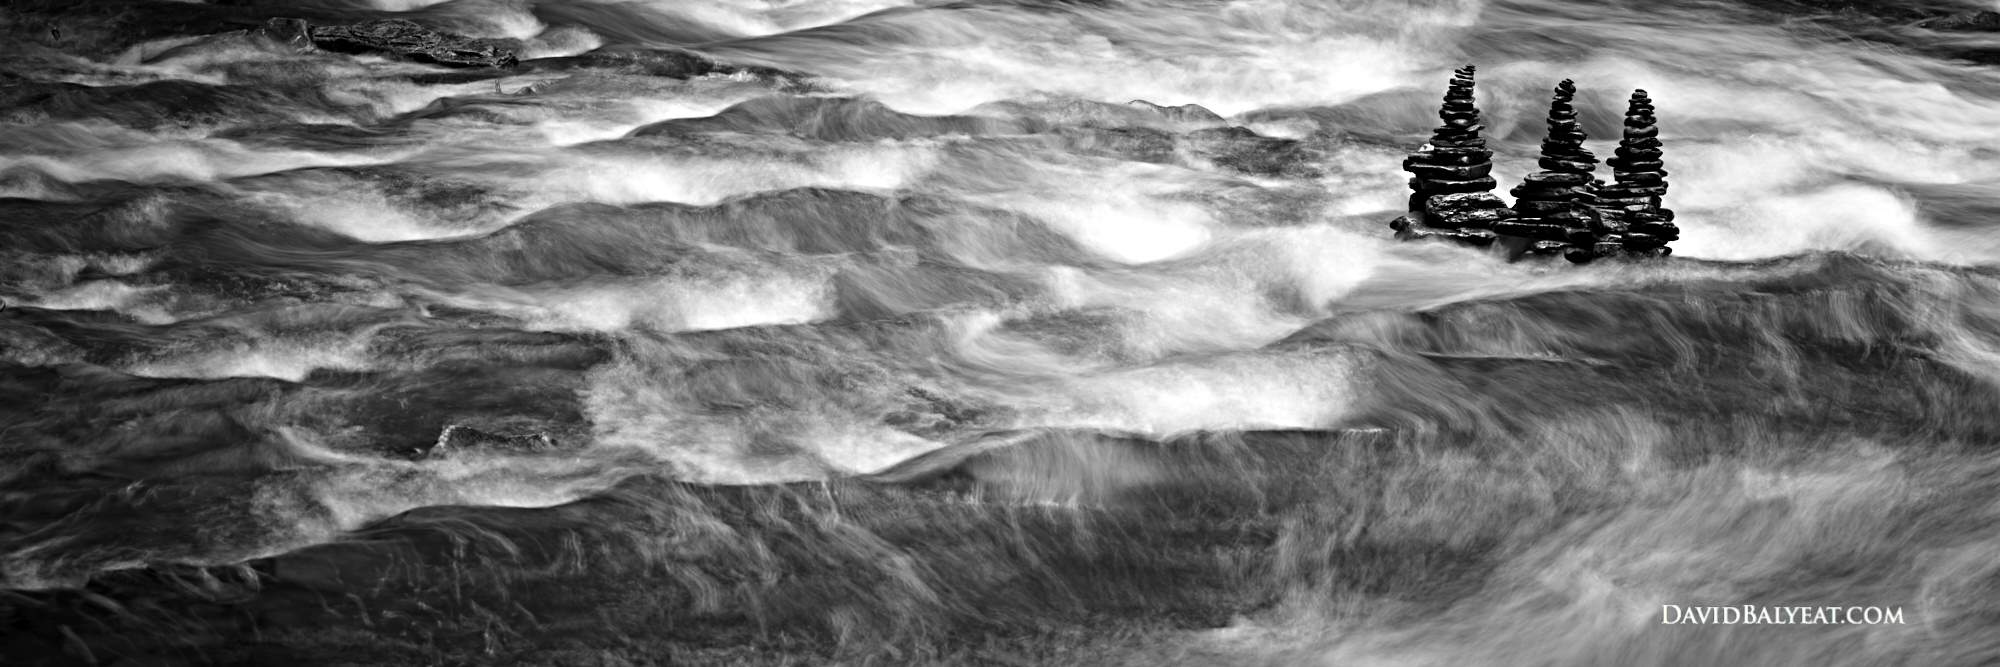 Cairns Black and White panoramic Ricketts Glen State Park Pennsylvania abstract river high definition HD photography